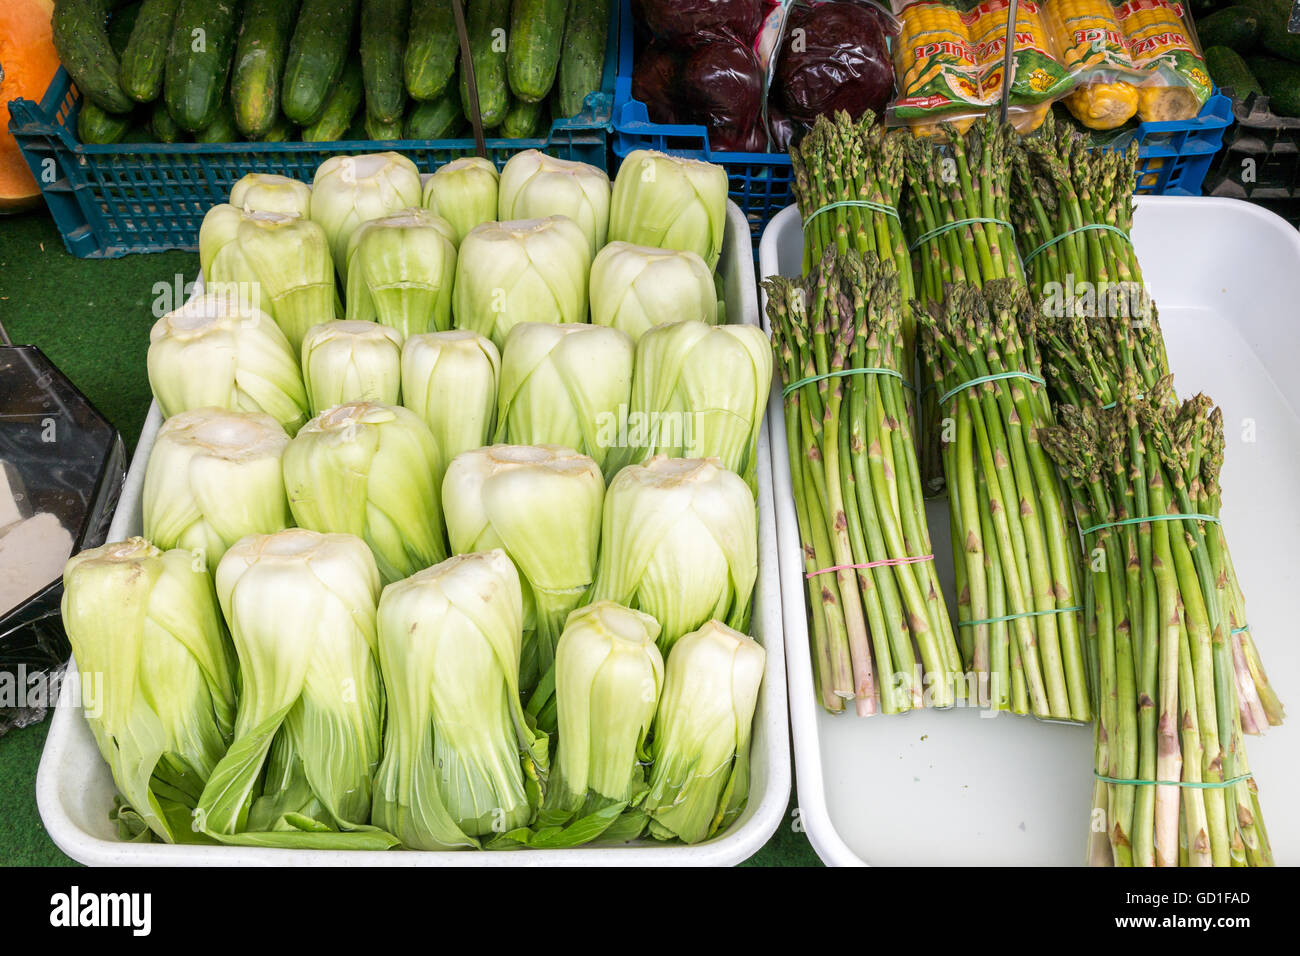 Chinese cabbage bok choy and bundles of fresh asparagus displayed in market stand on Naschmarkt in Vienna, Austria - Stock Image